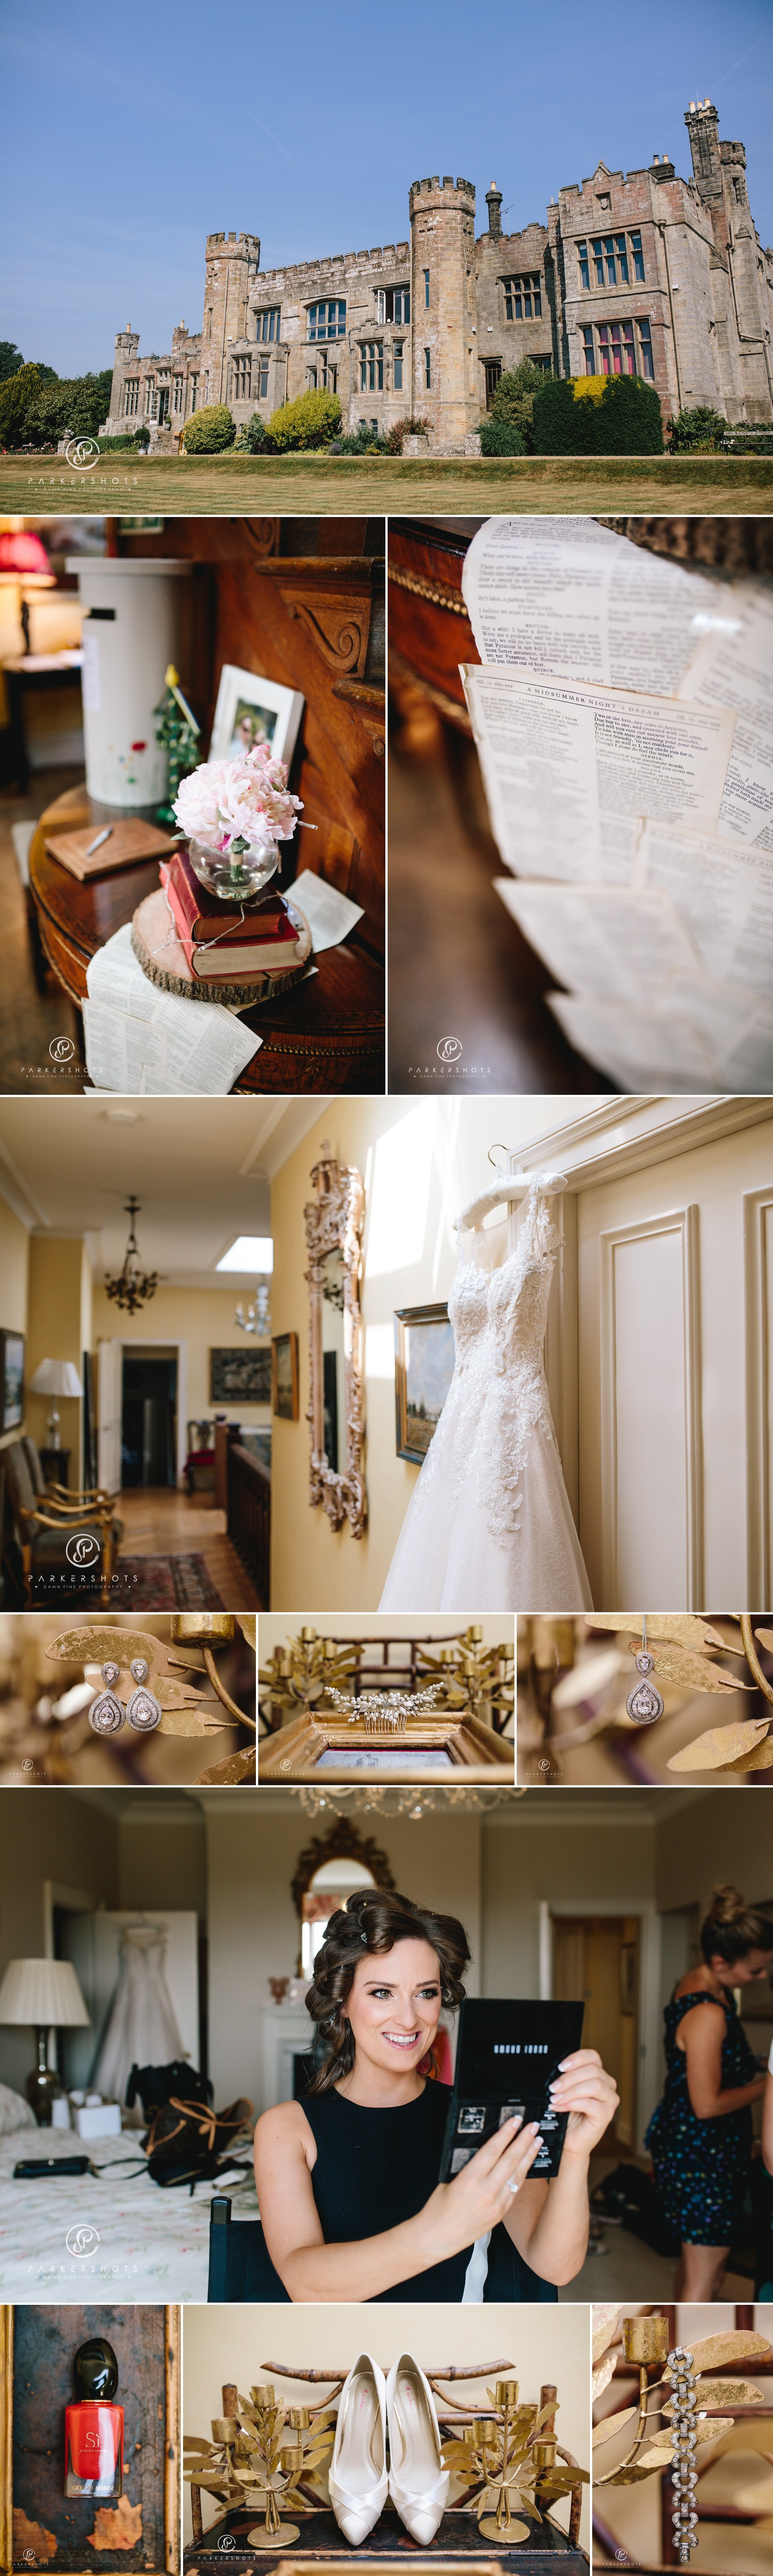 Wadhurst Castle Wedding Photographer - Bridal Details